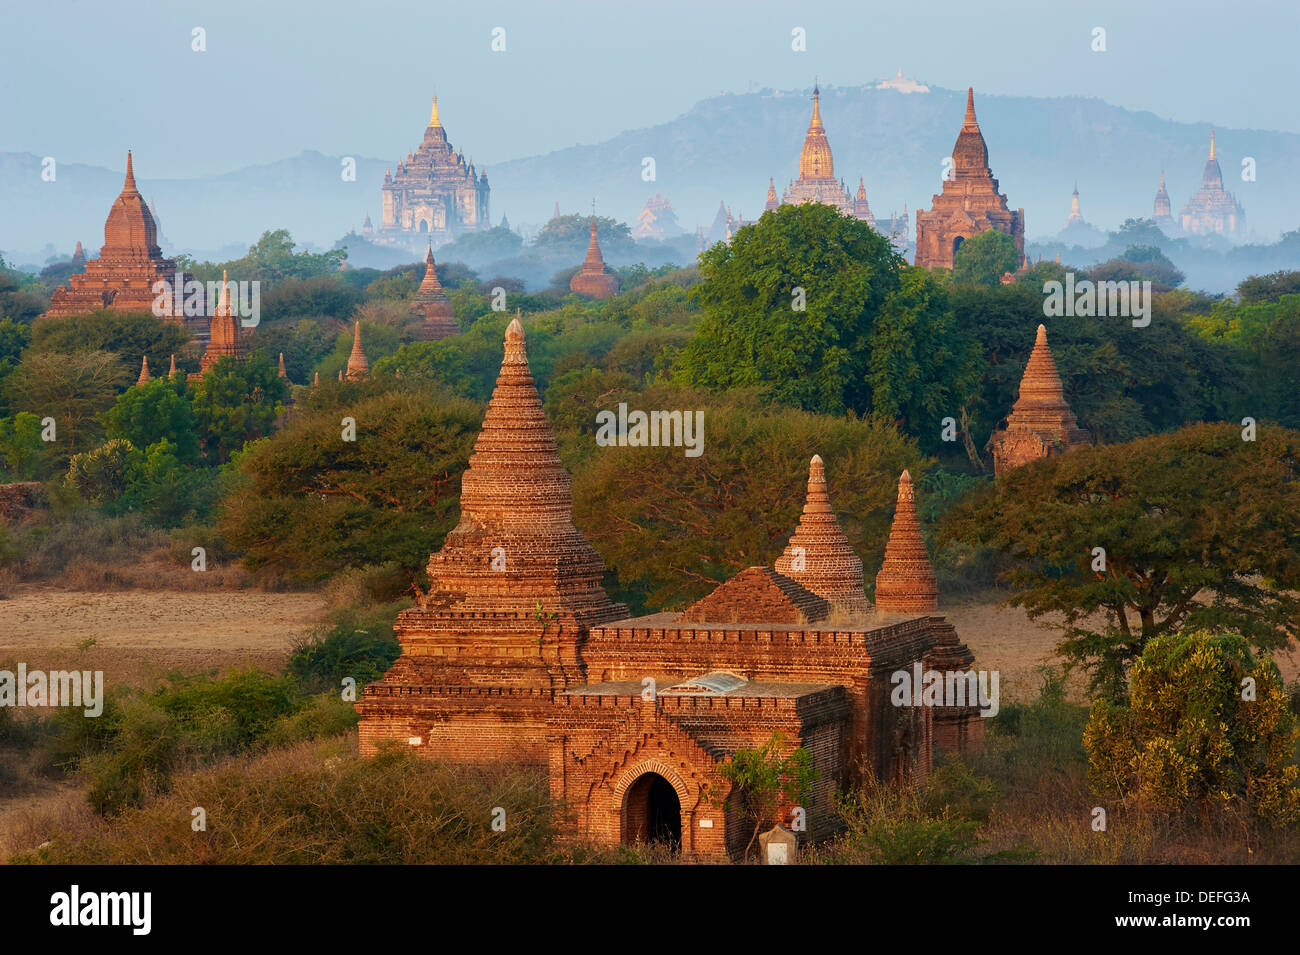 Bagan (Pagan), Myanmar (Burma), Asia Stock Photo